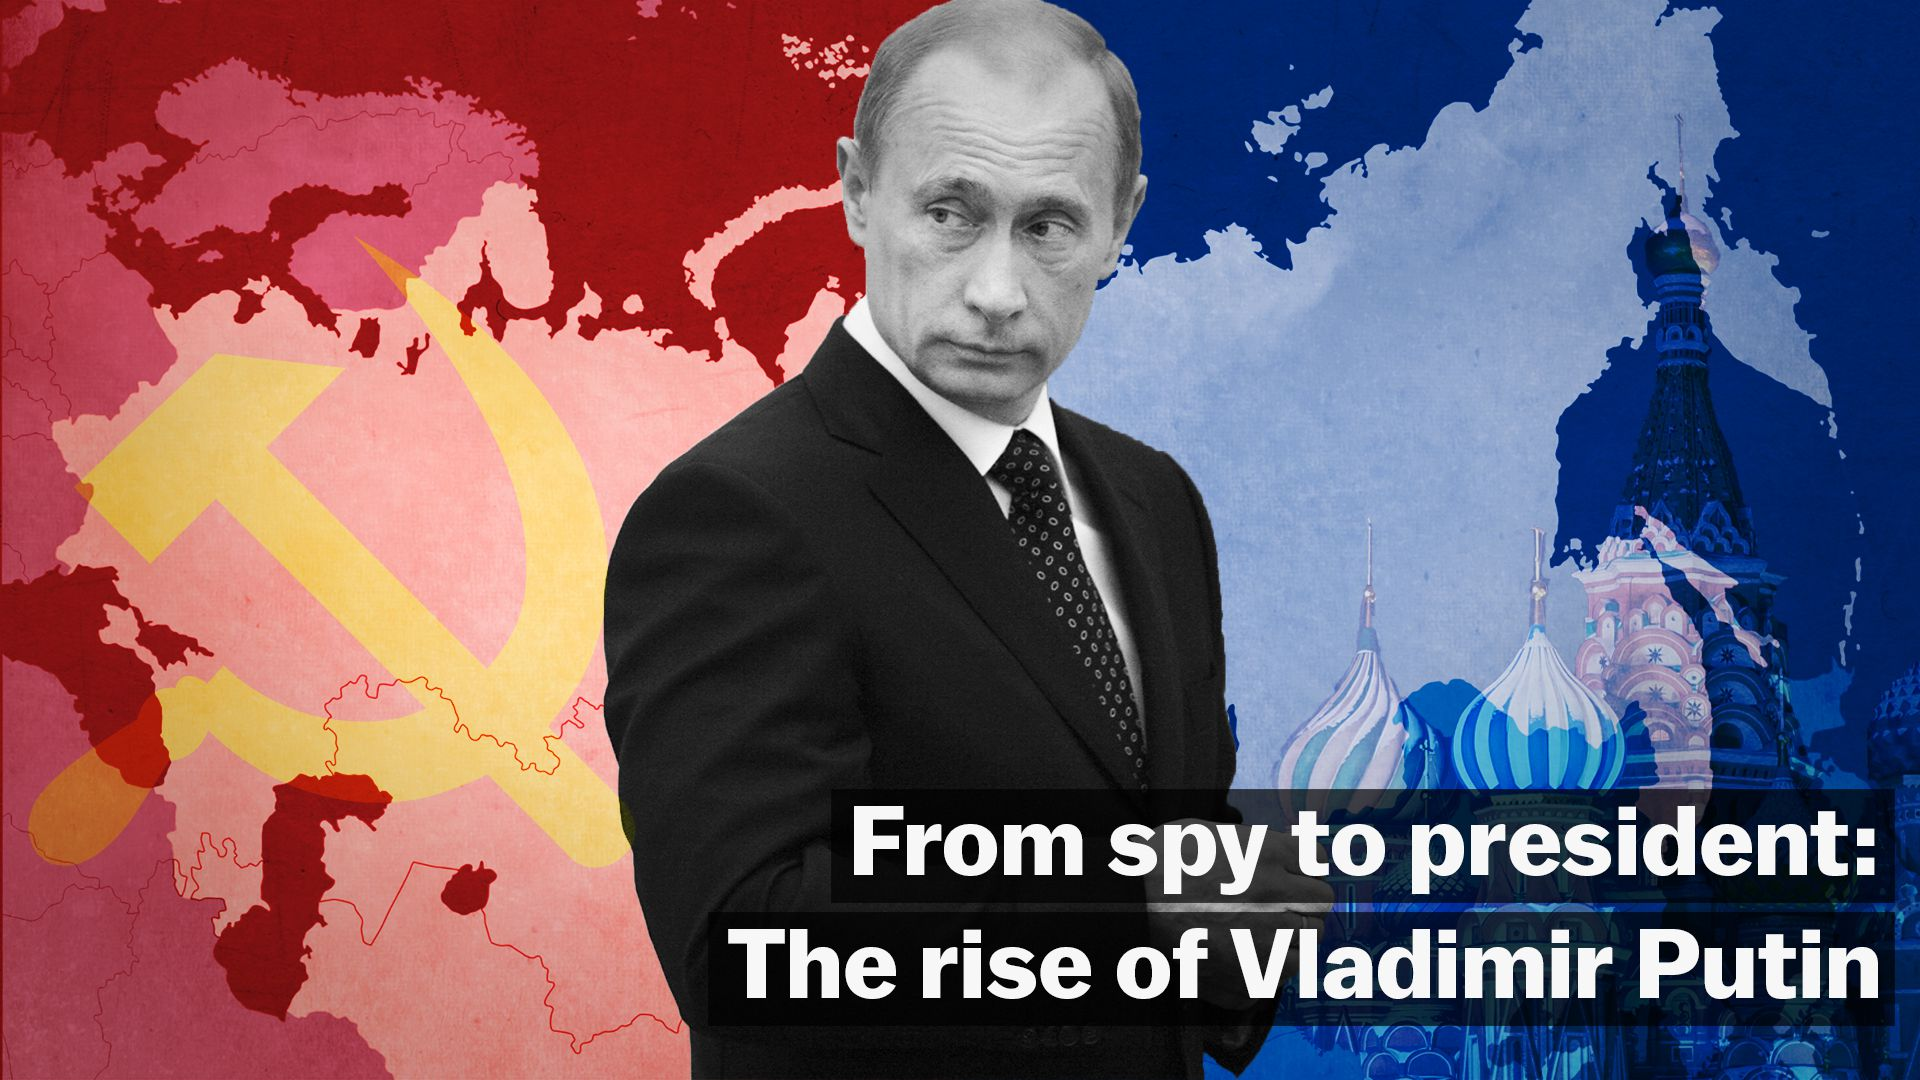 From Spy To President The Rise Of Vladimir Putin Vox Putting Control System Together Spu Design Has Now Been